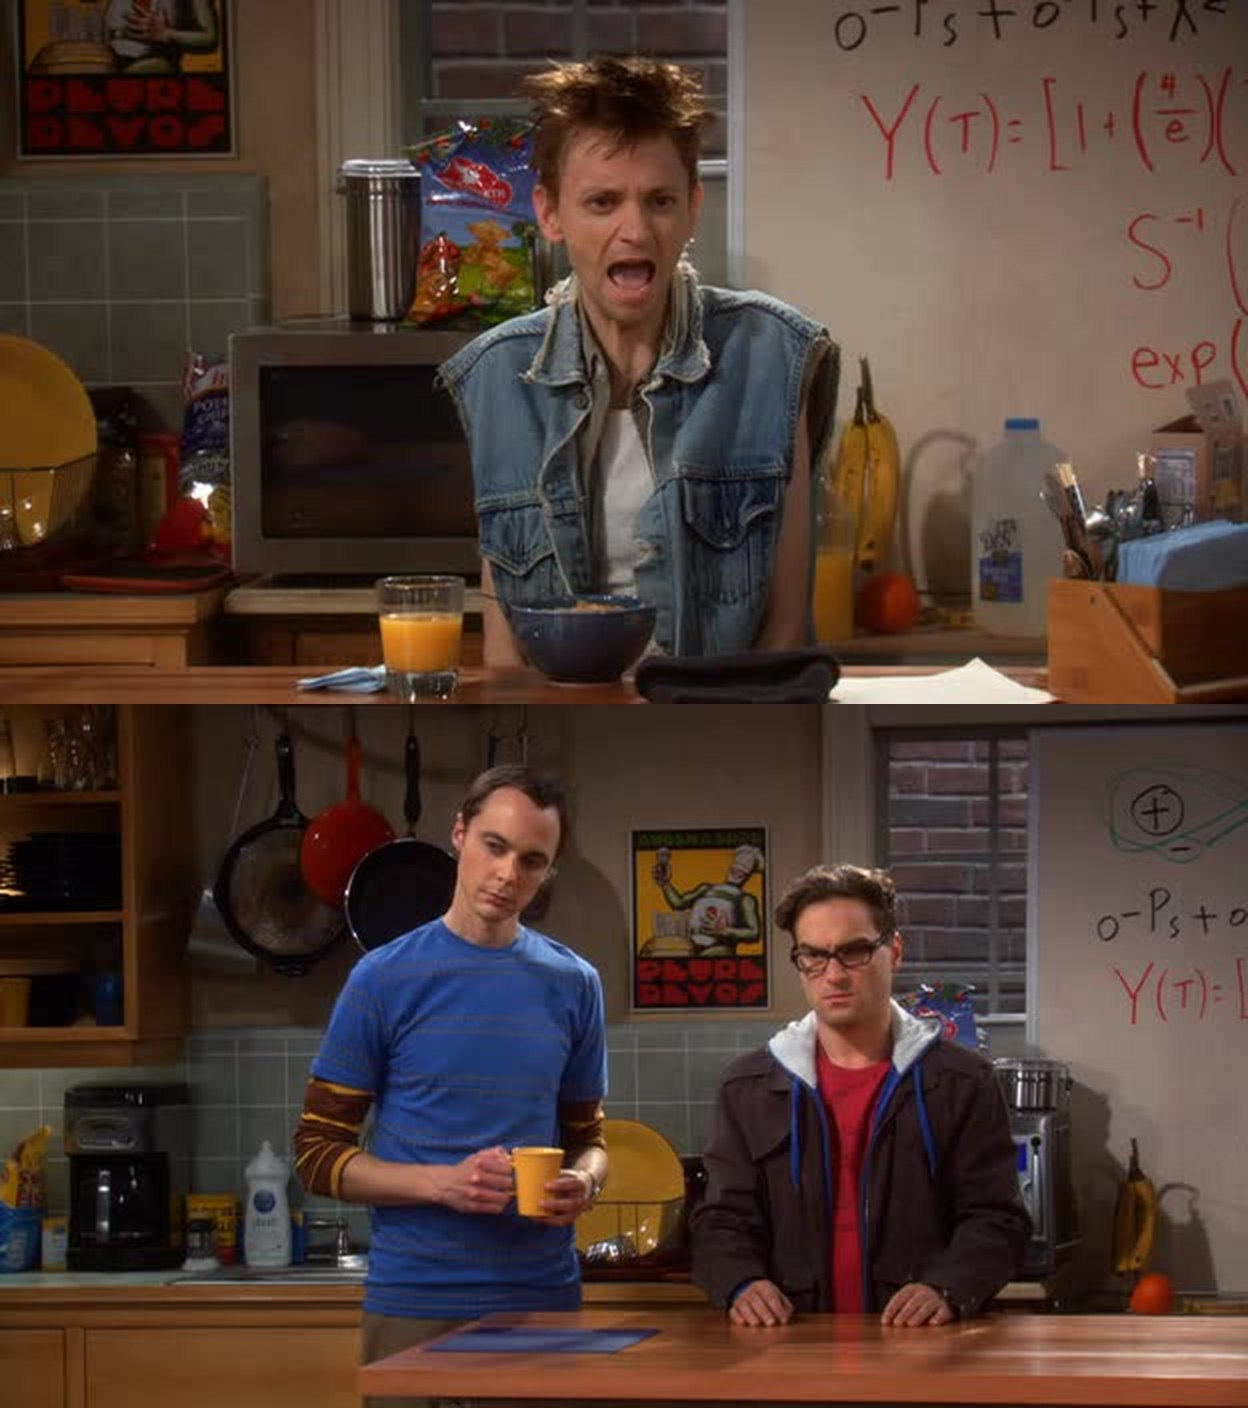 The big lie and there reactions, so funny! Mdr